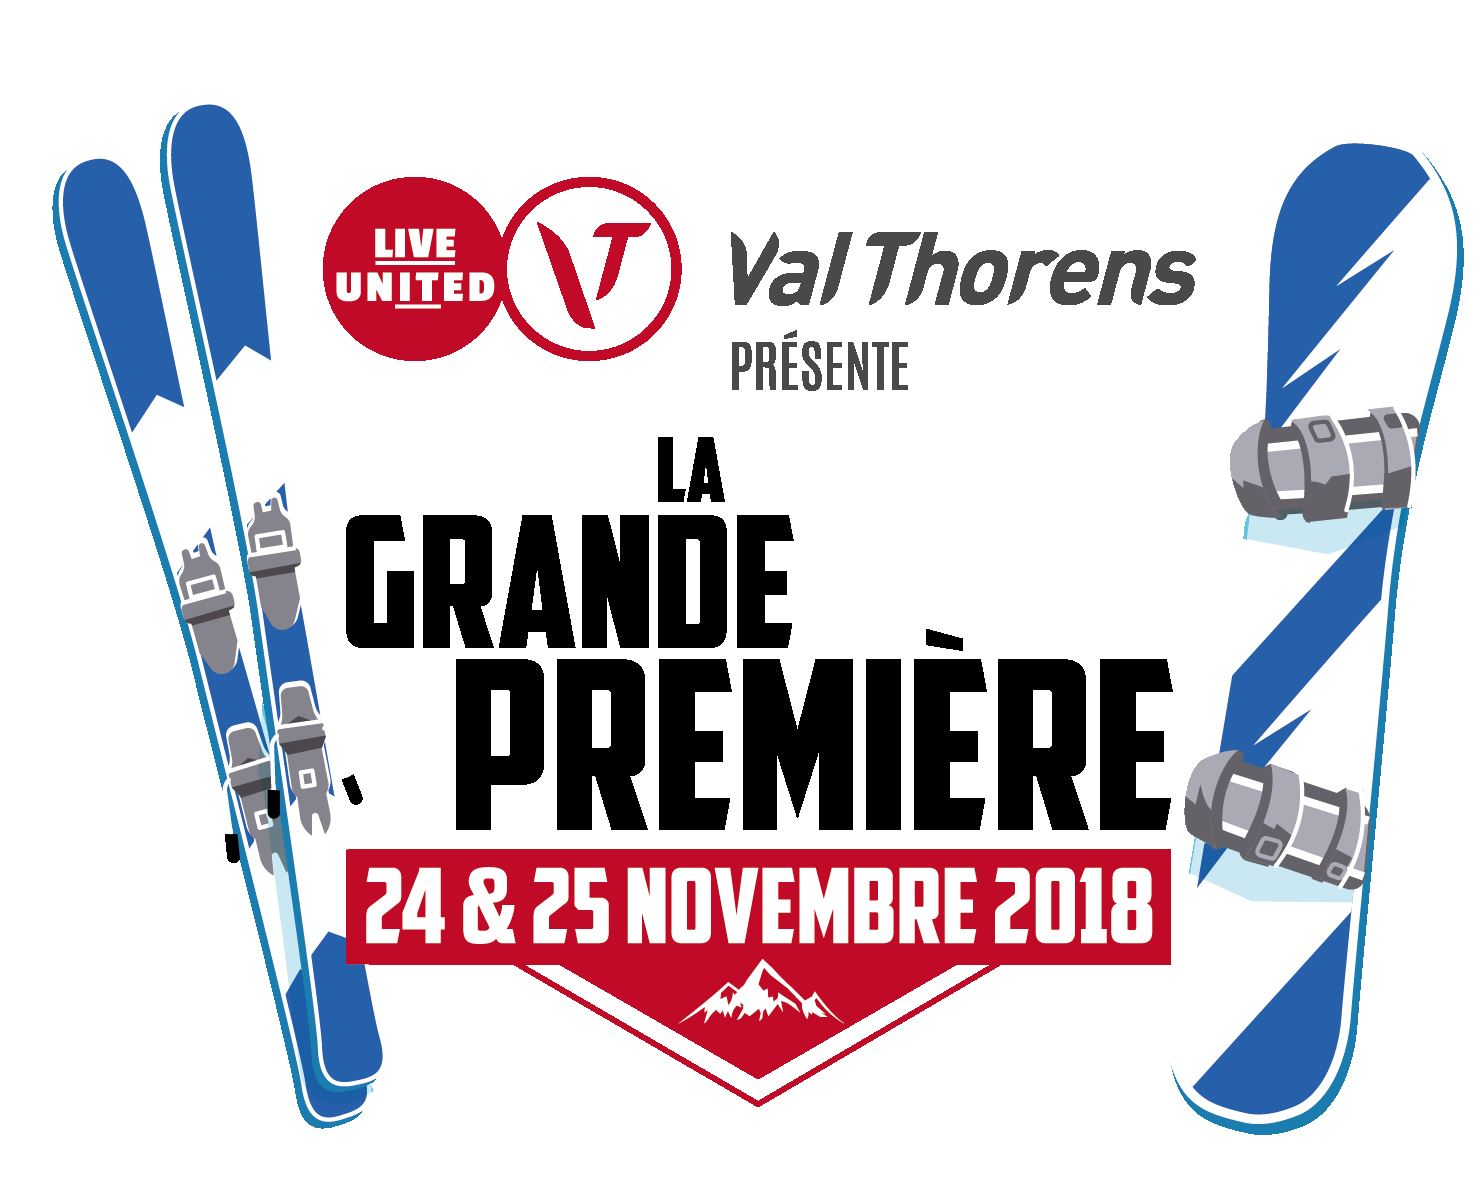 WEEKEND LA GRANDE PREMIERE - FROM 23/11/18 TO 25/11/18 - STUDIO AND APARTMENT - FROM 116 € / PERS*